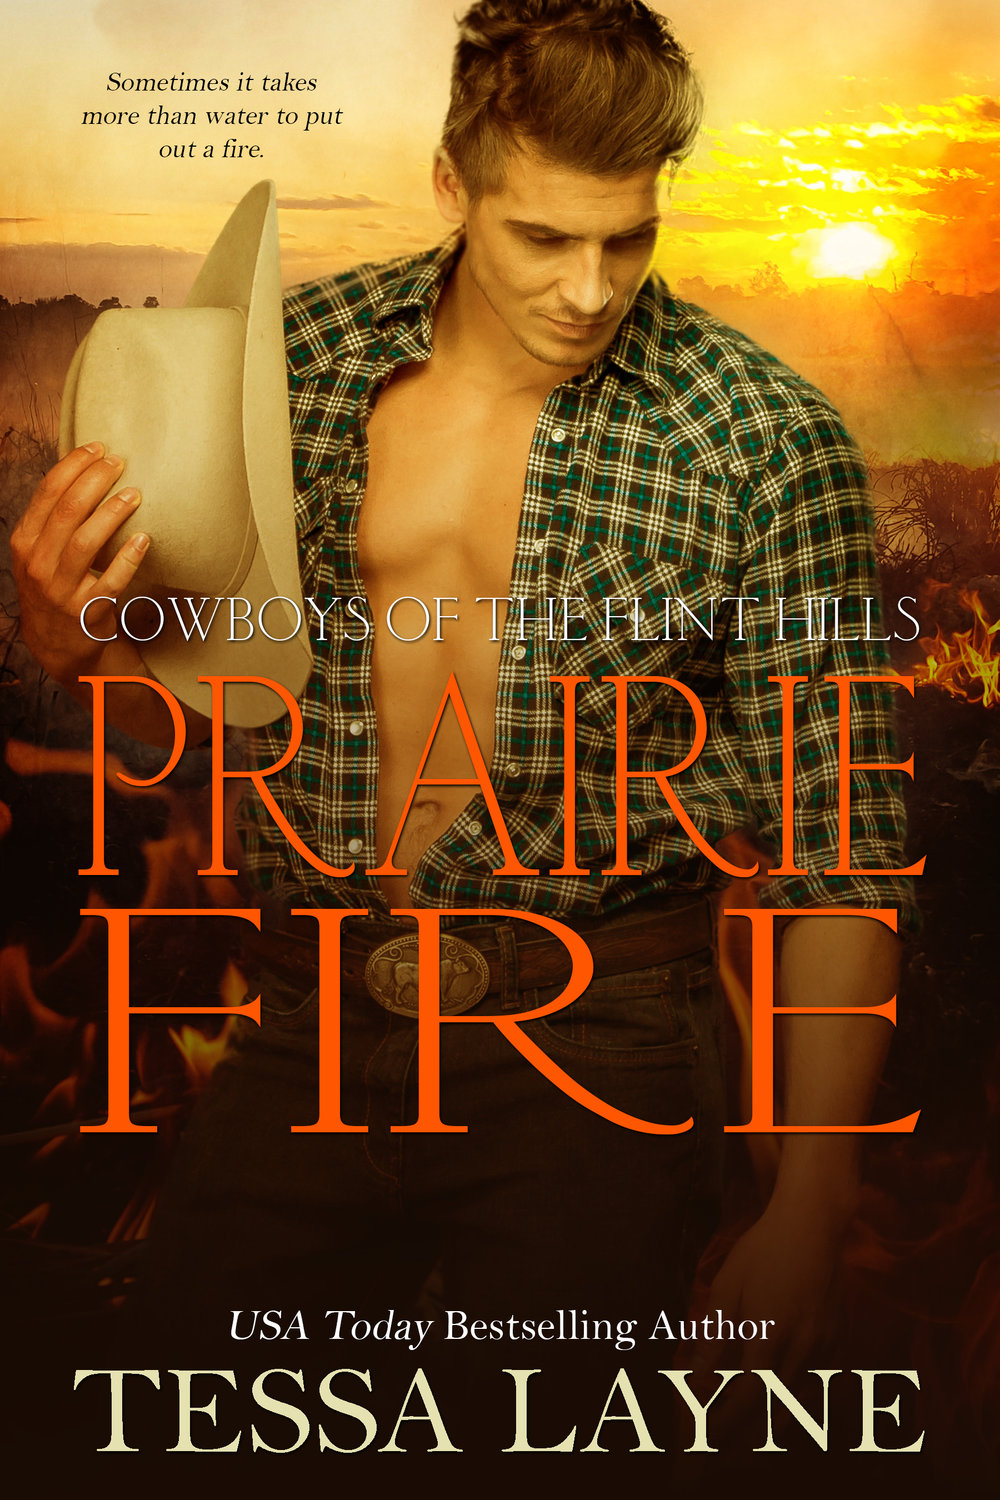 Only love can quench this fire - When Cassidy volunteers for a dangerous hotshot mission in the wilds of Colorado, Parker insists on going with her. As they travel together into a life-threatening situation, will their love combust like the trees that surround them? And in the battlefield of a forest fire, will Cassidy be brave enough to fight for the one thing that will snuff out the fires that rage within her?Download HereKINDLE IBOOKS NOOK GOOGLE KOBO